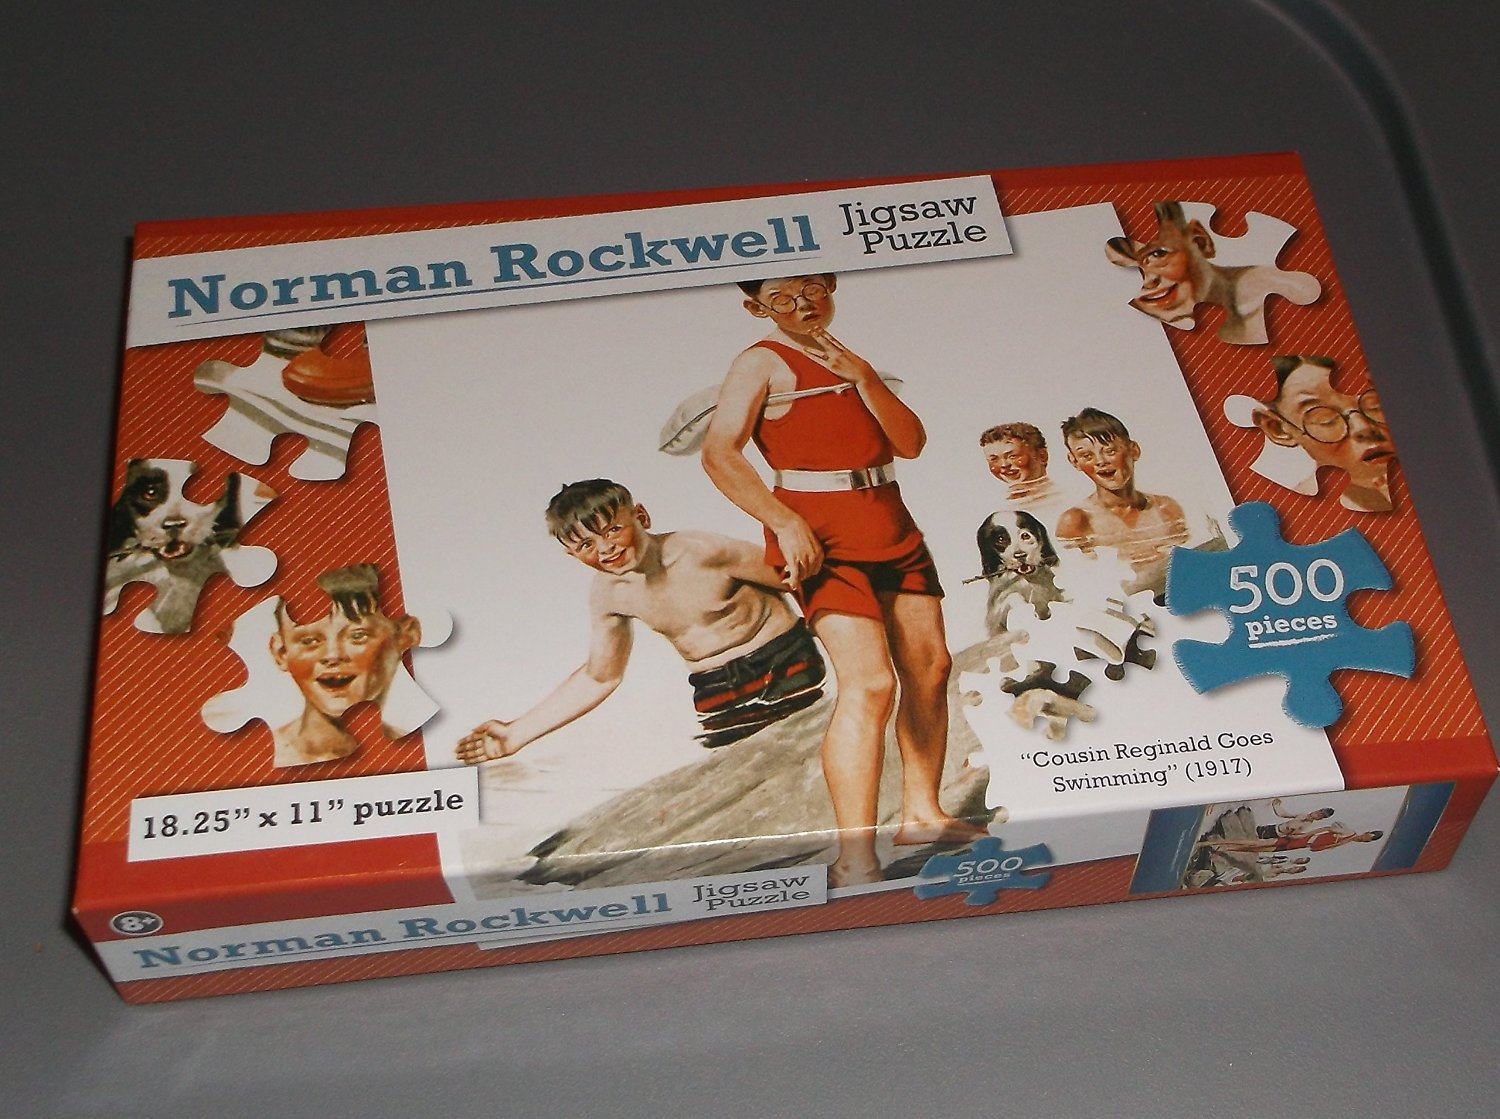 Normal Rockwell Jigsaw Puzzle - Cousin Reginald Goes Swimming - 500 Pieces 18.25 inches x 11 inches